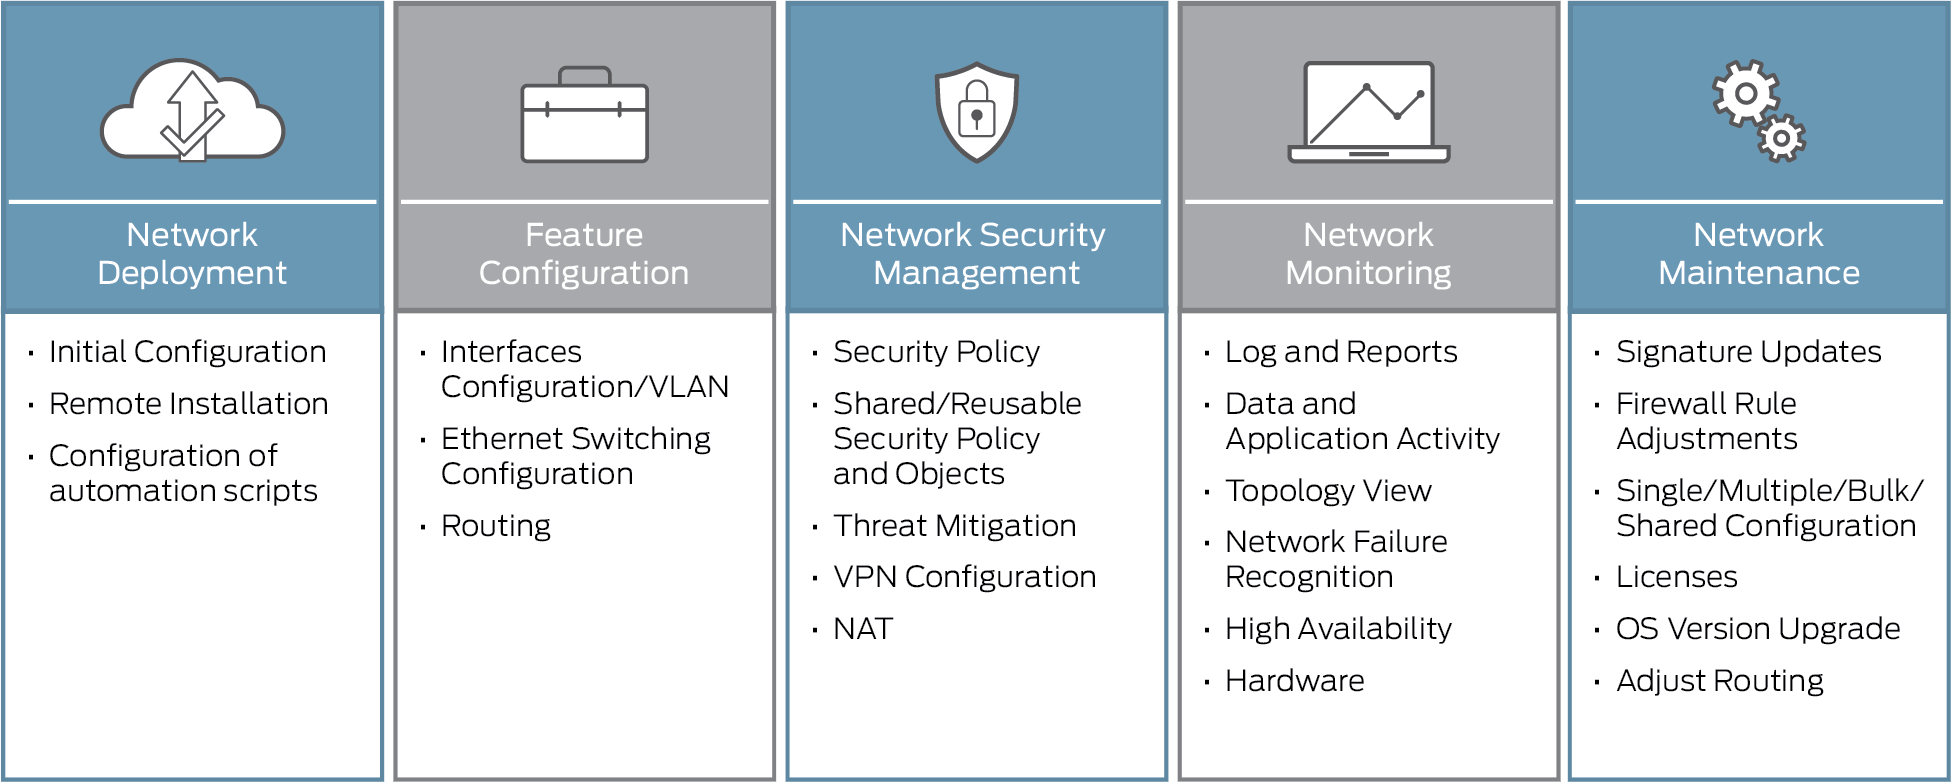 Regulatory Security Policy